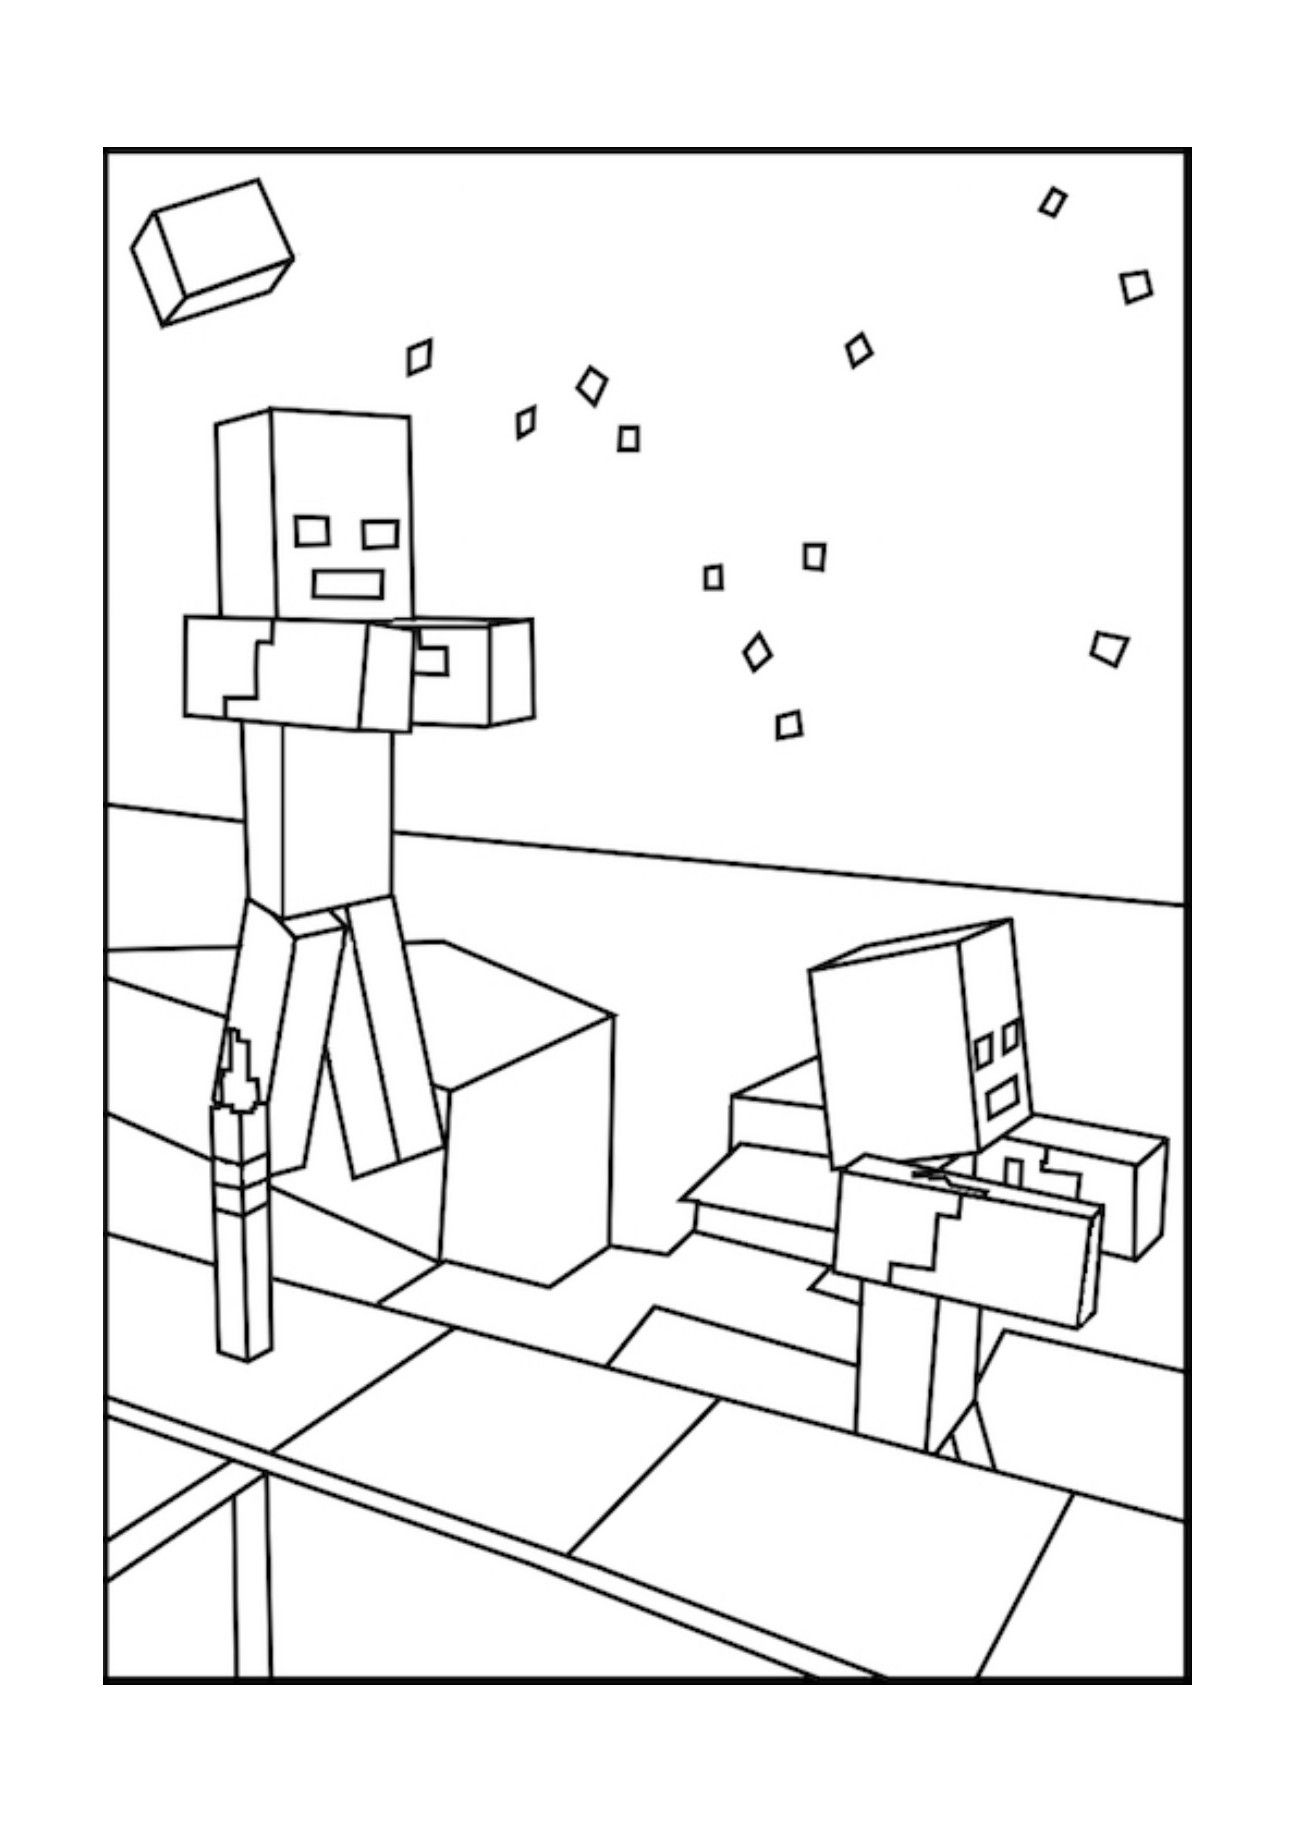 Minecraft Villager Coloring Page Youngandtae Com Minecraft Coloring Pages Disney Coloring Pages Coloring Pages To Print